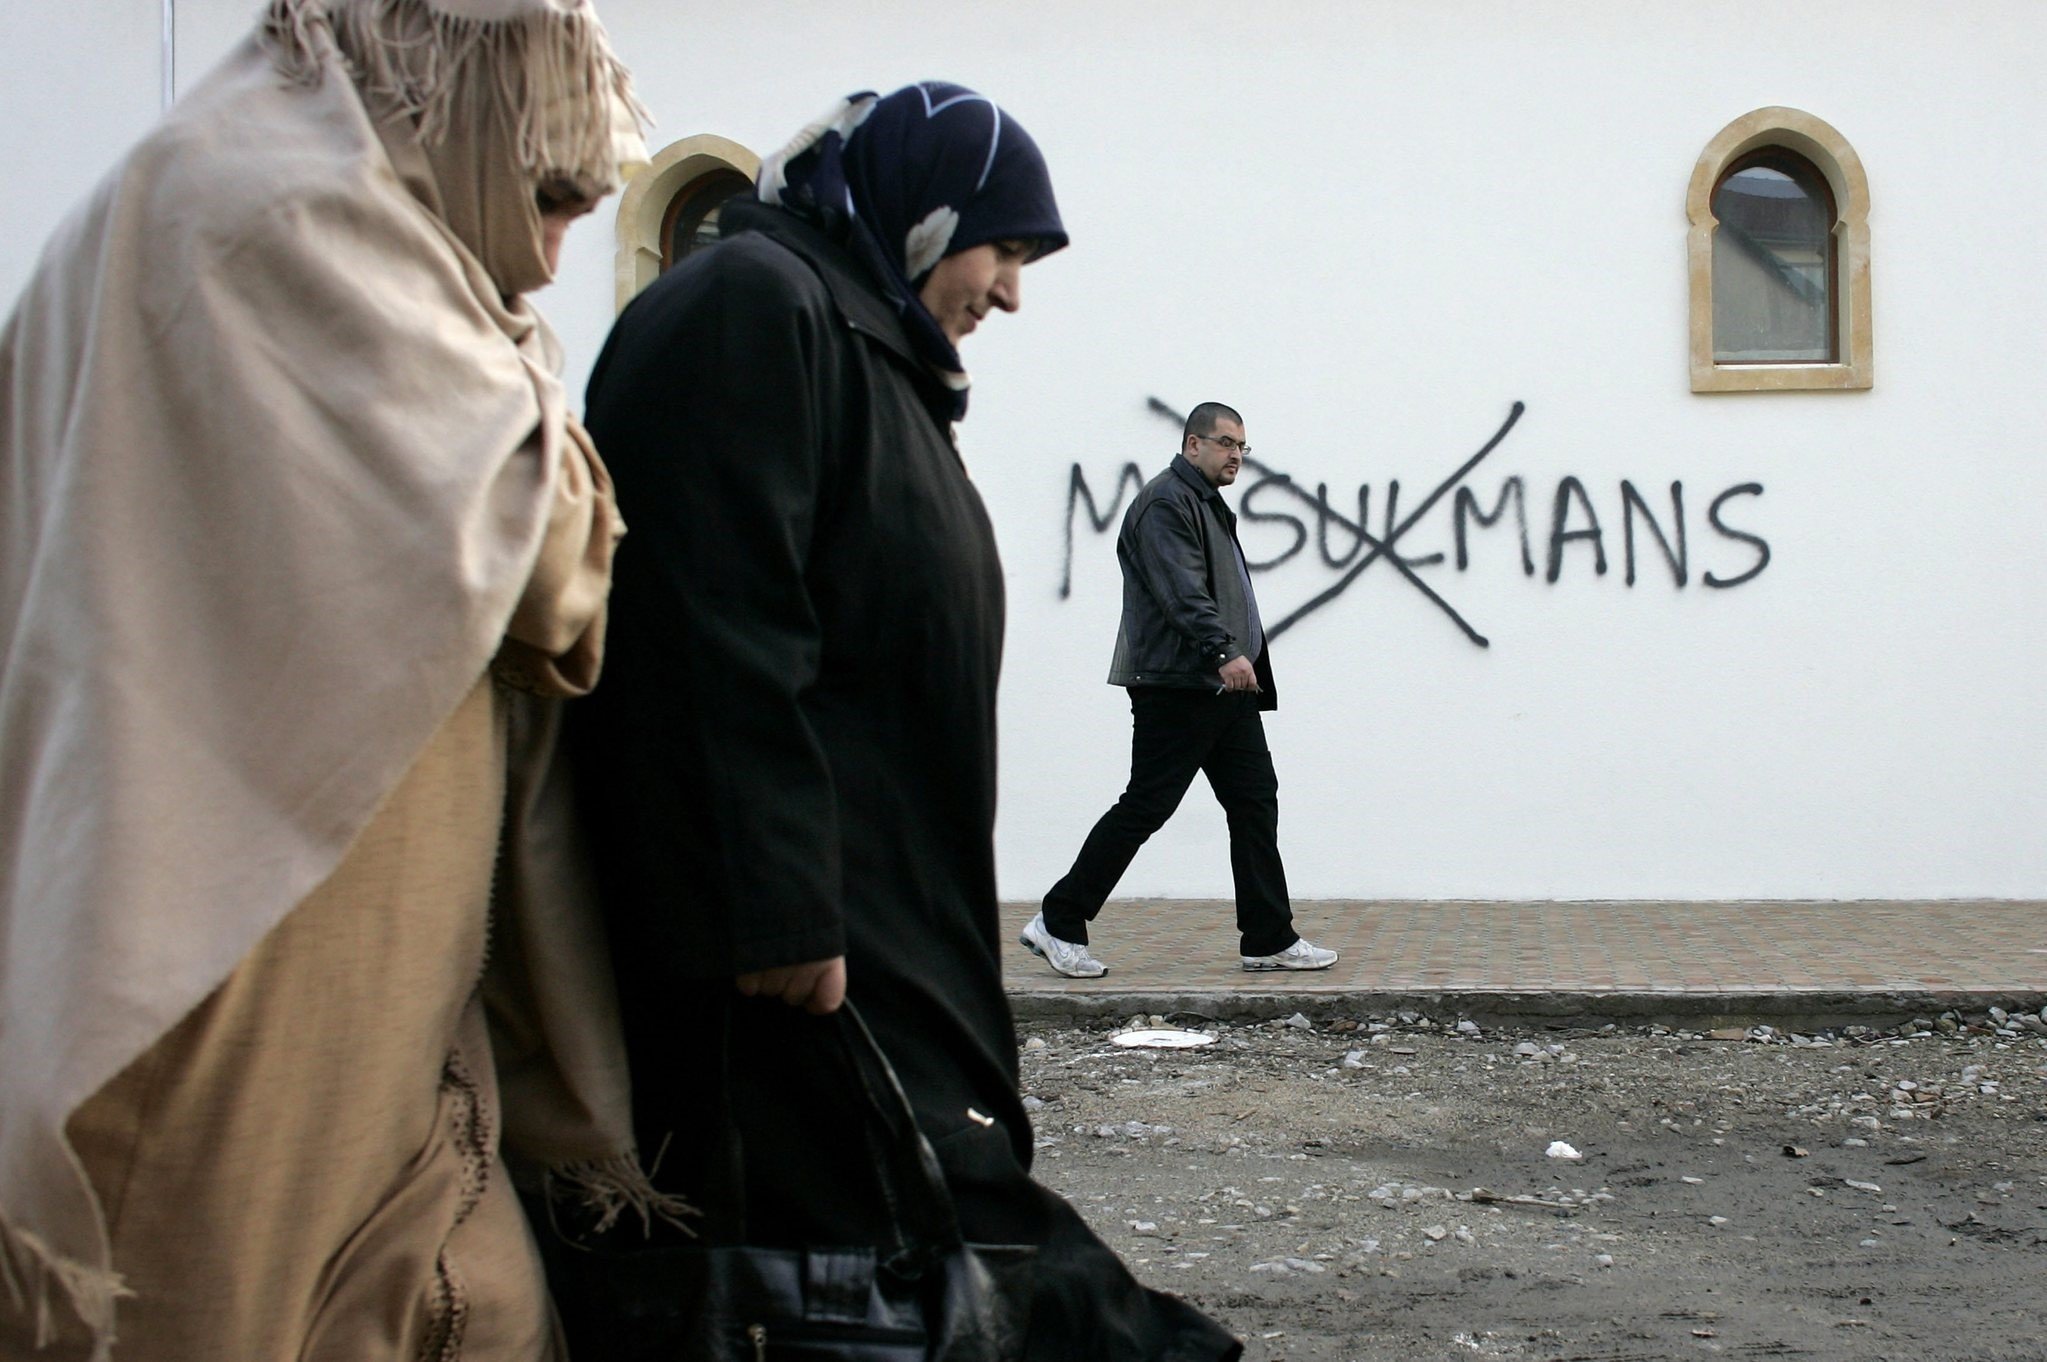 In this Monday Feb. 8, 2010 file photo, Muslim residents walk past racial slurs painted on the walls of a mosque in the town of Saint-Etienne, central France. (AP Photo)